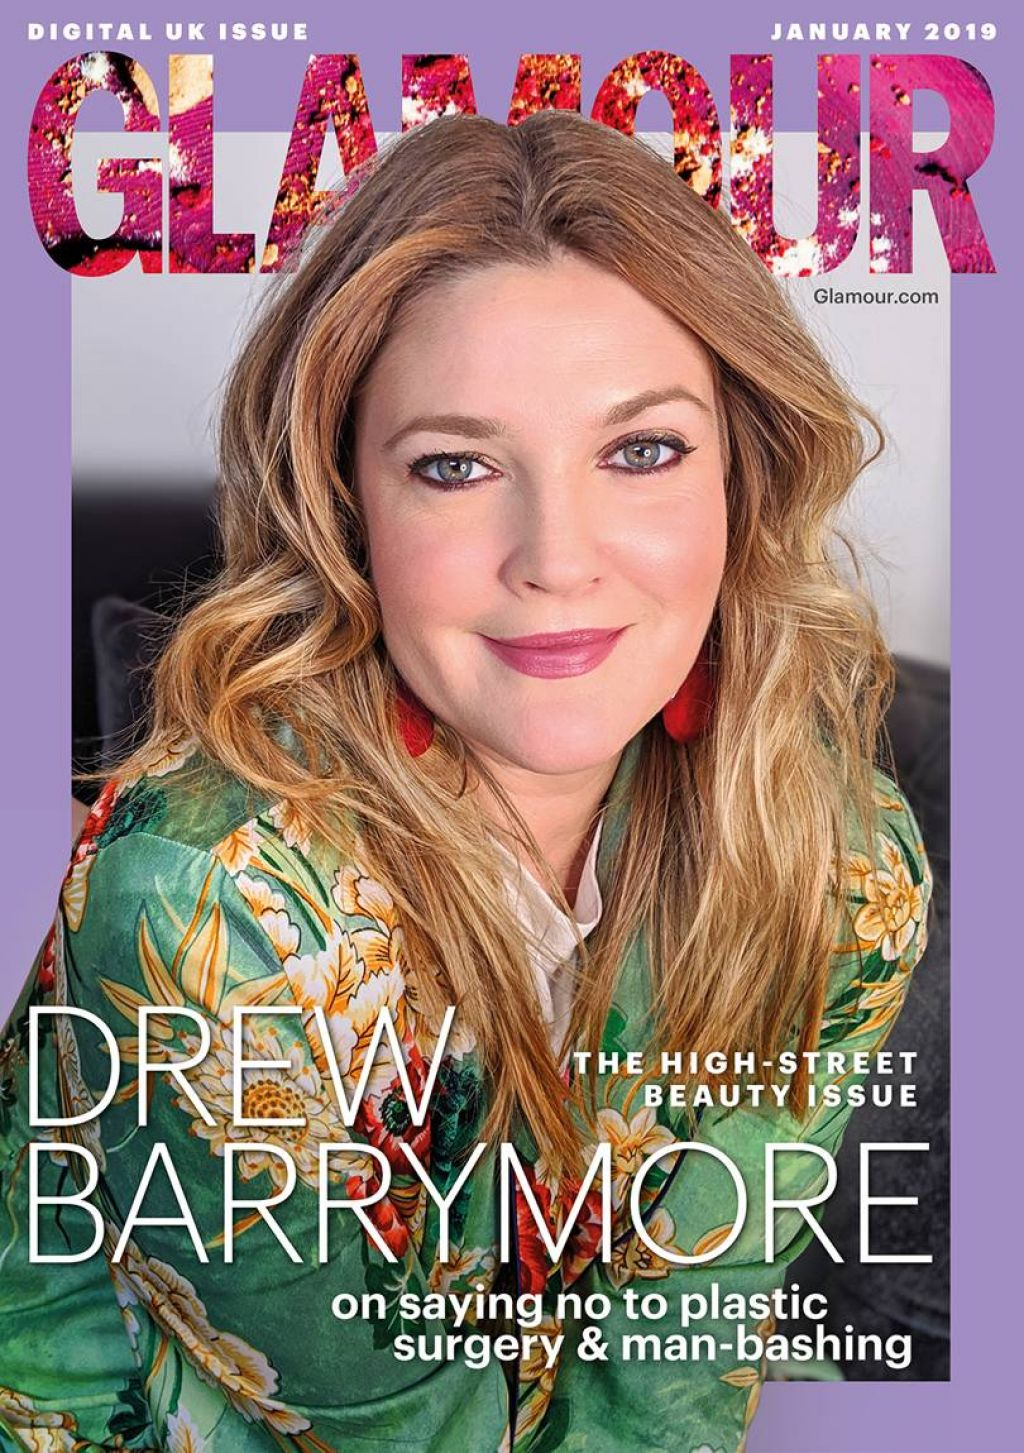 https://celebmafia.com/wp-content/uploads/2019/01/drew-barrymore-glamour-uk-january-2019-0.jpg